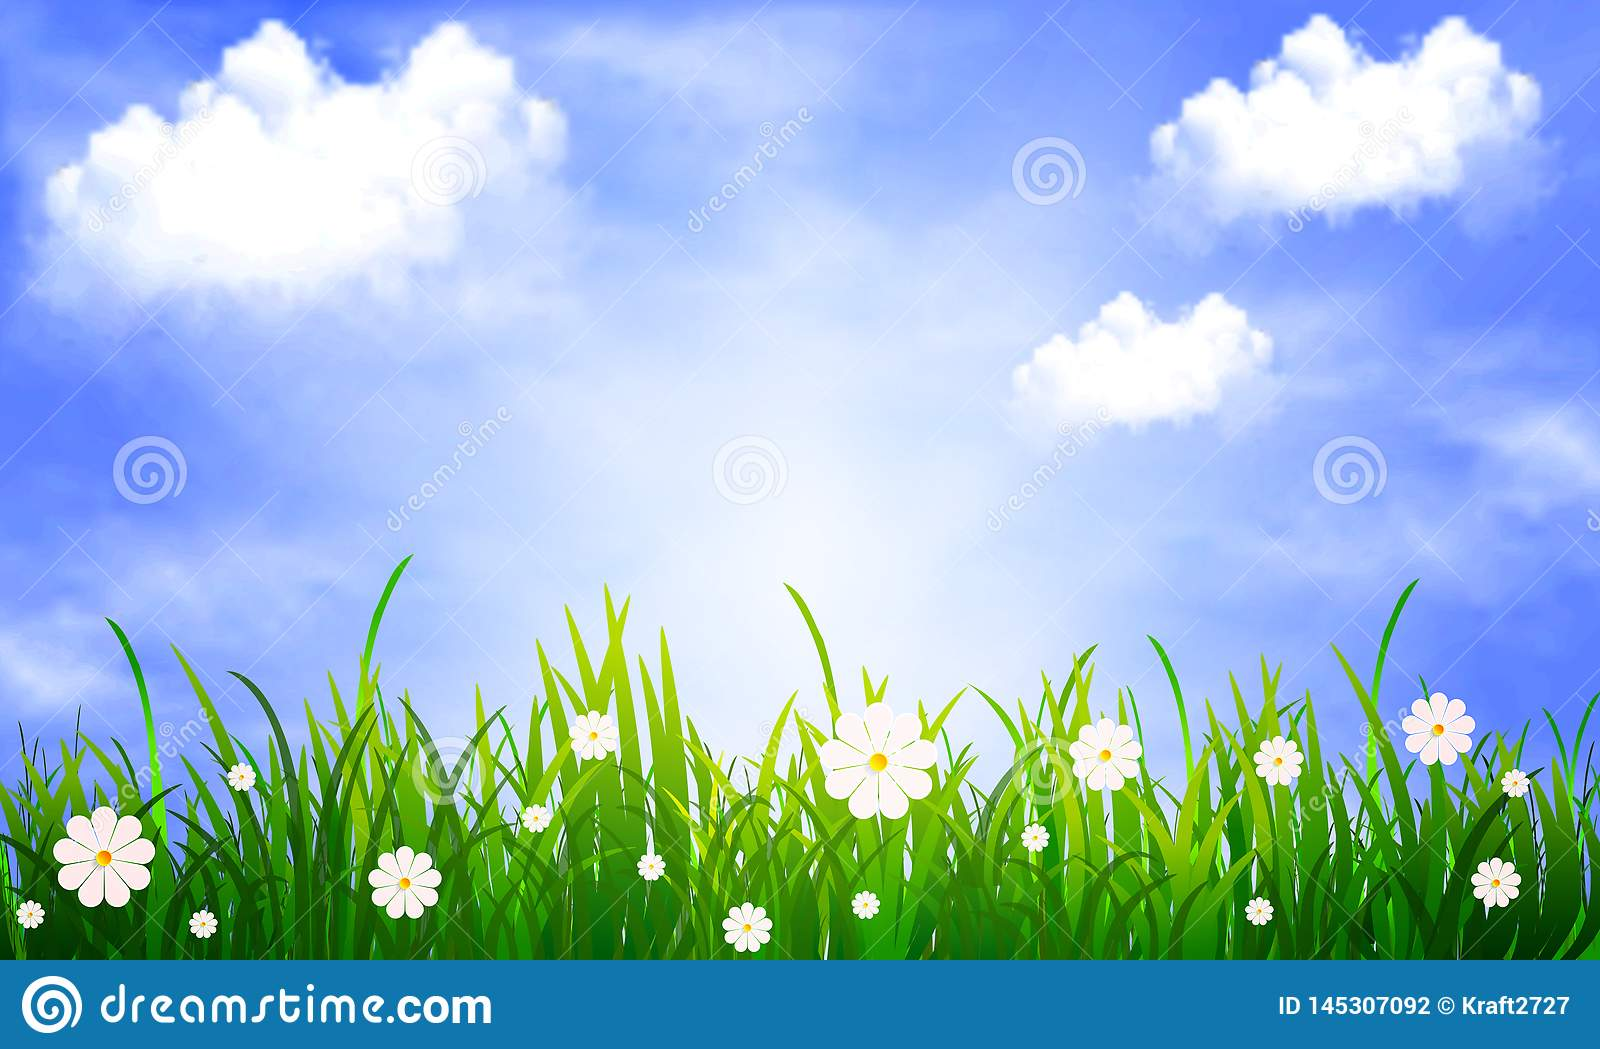 grass with daisies on a background of blue sky with clouds stock vector illustration of camomile environment 145307092 https www dreamstime com grass daisies background blue sky clouds vector art illustration grass daisies background blue sky image145307092